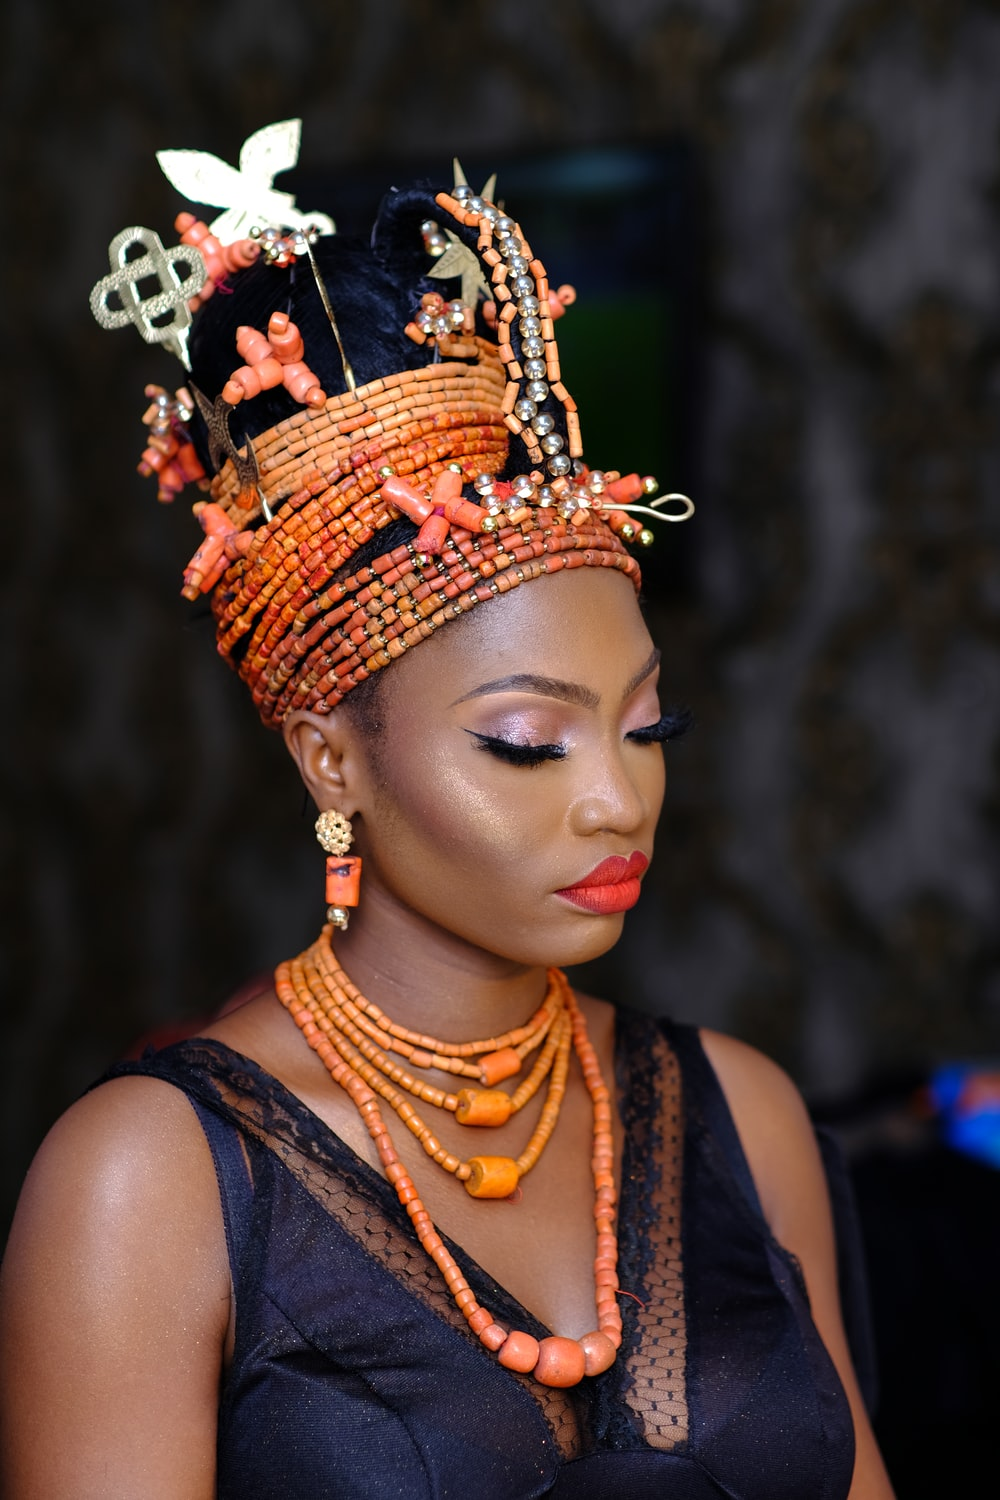 woman in orange and black floral headdress